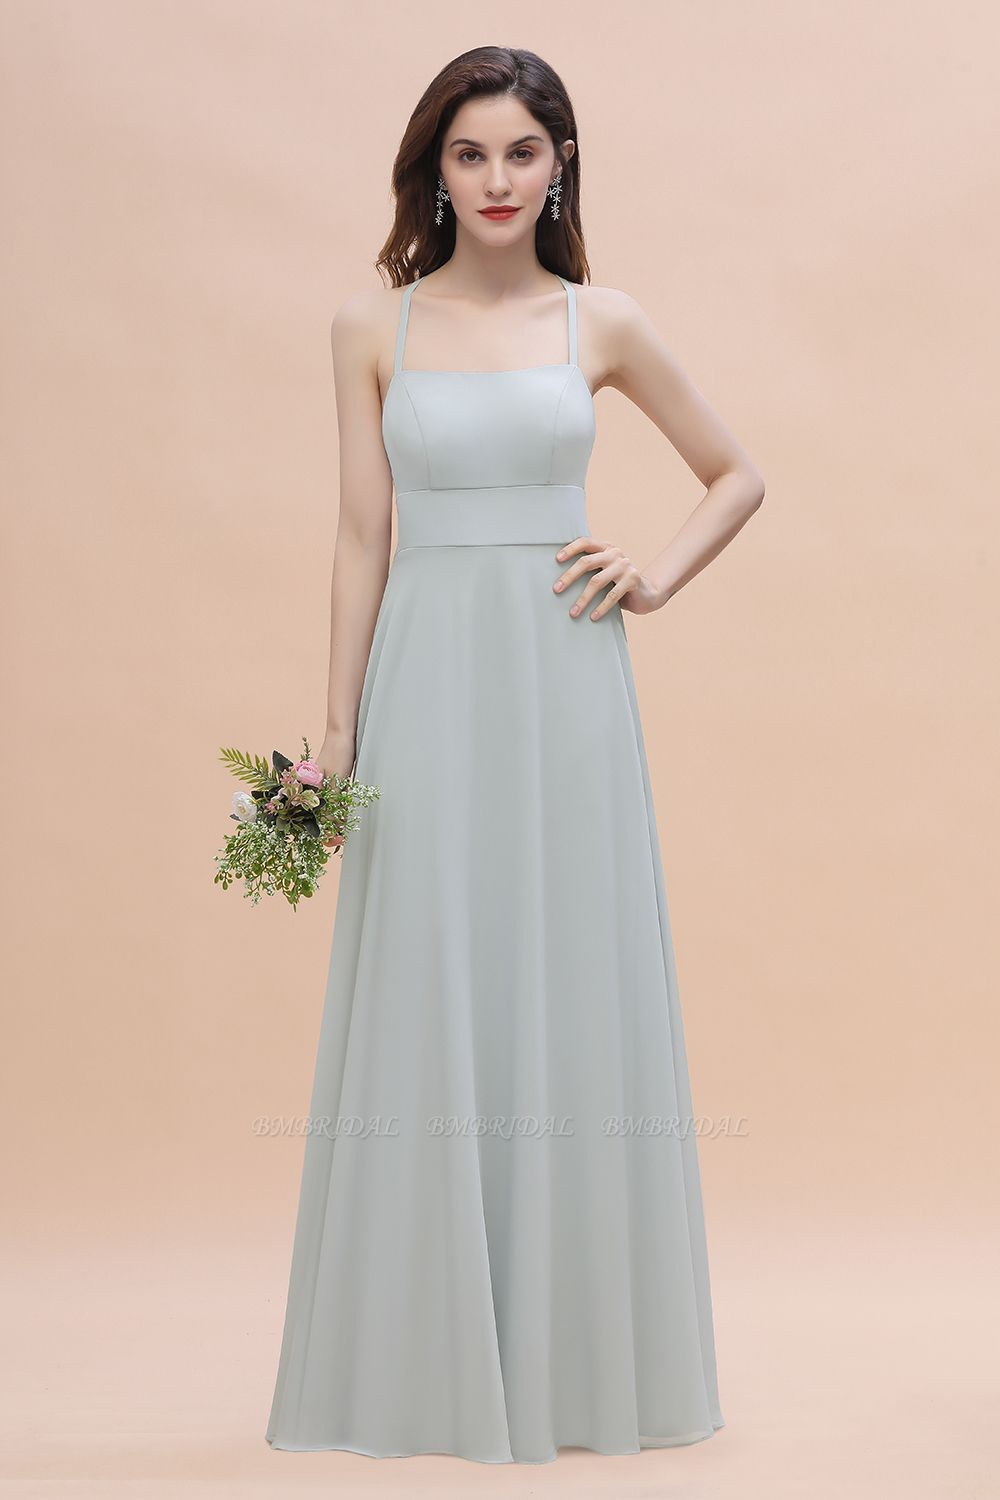 Simple Straps A-line Chiffon Mist Bridesmaid Dress with Ruffles Online